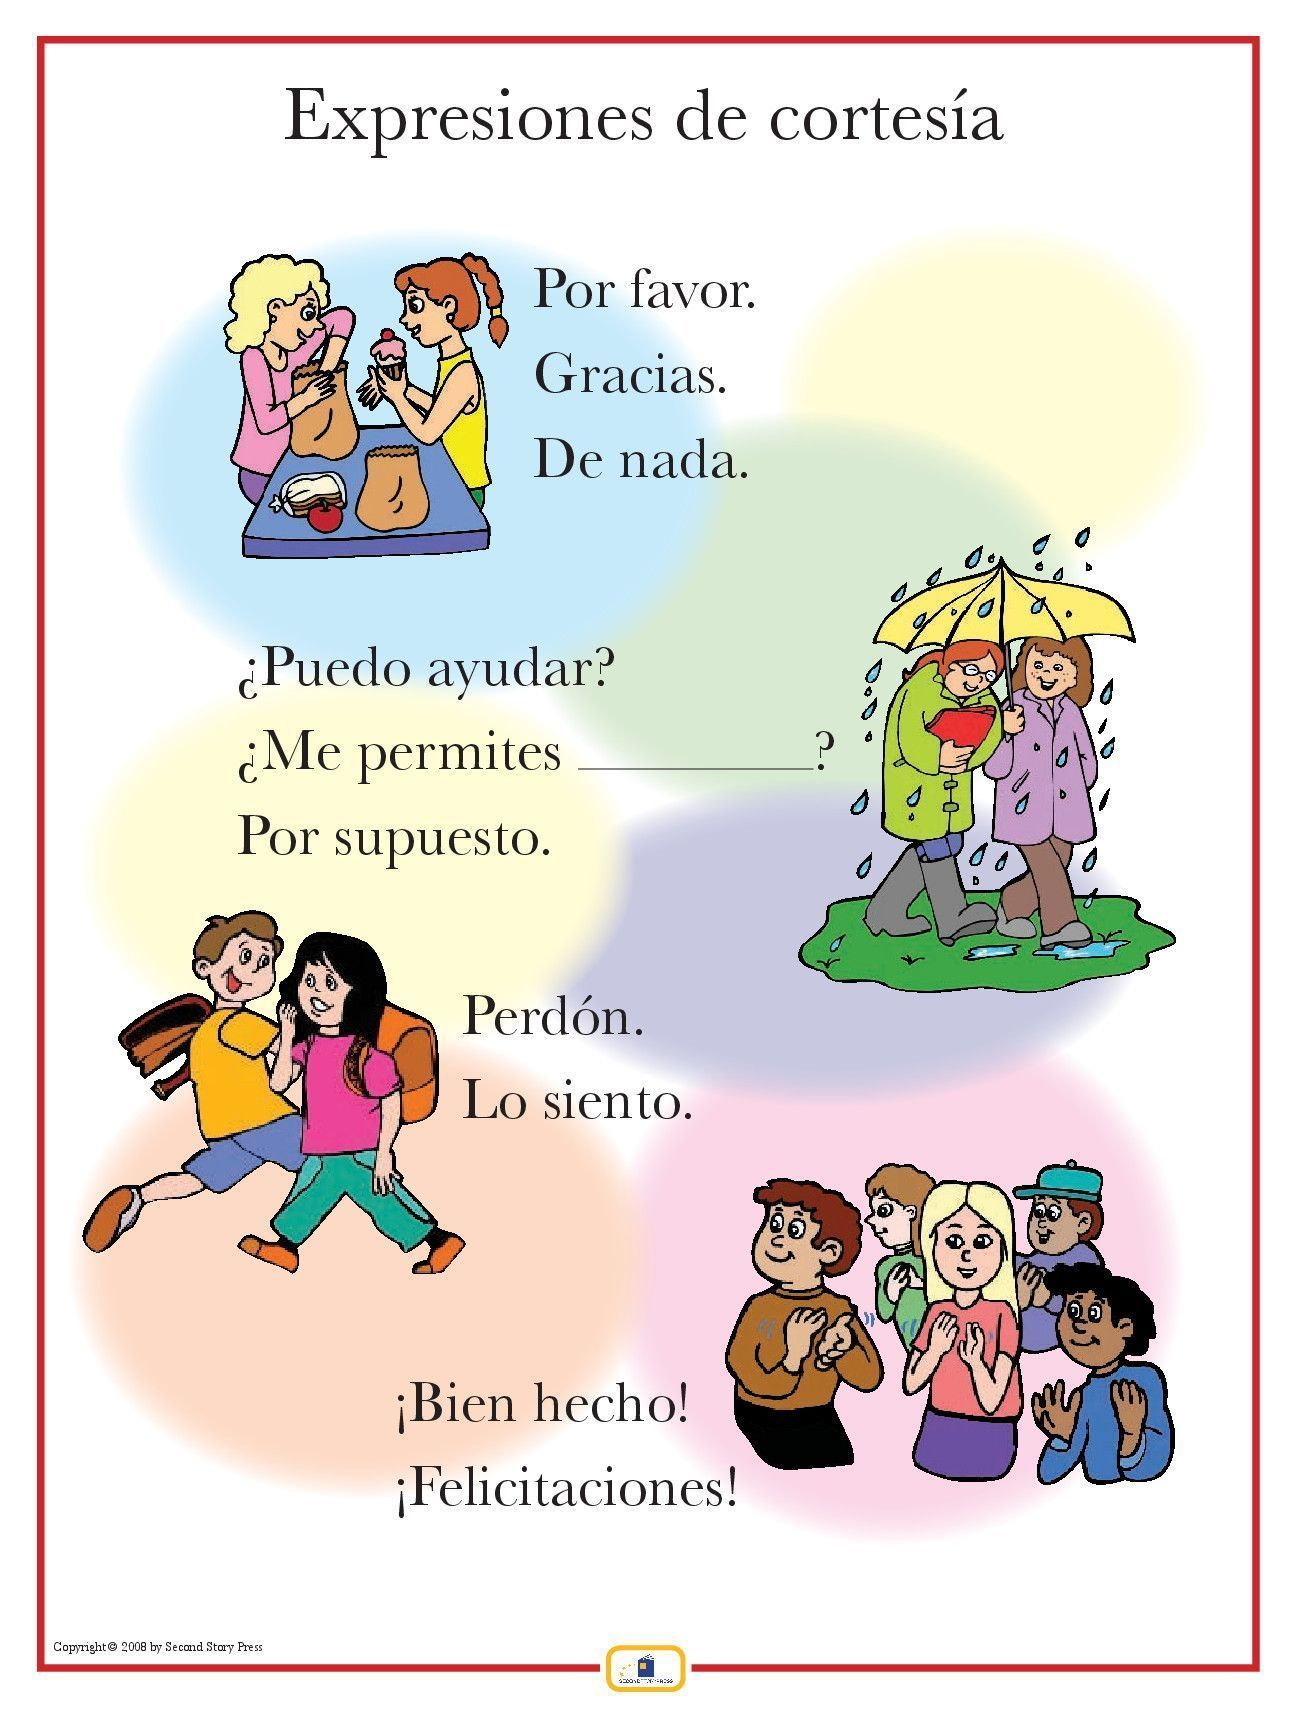 Should Spanish Be Required In Schools